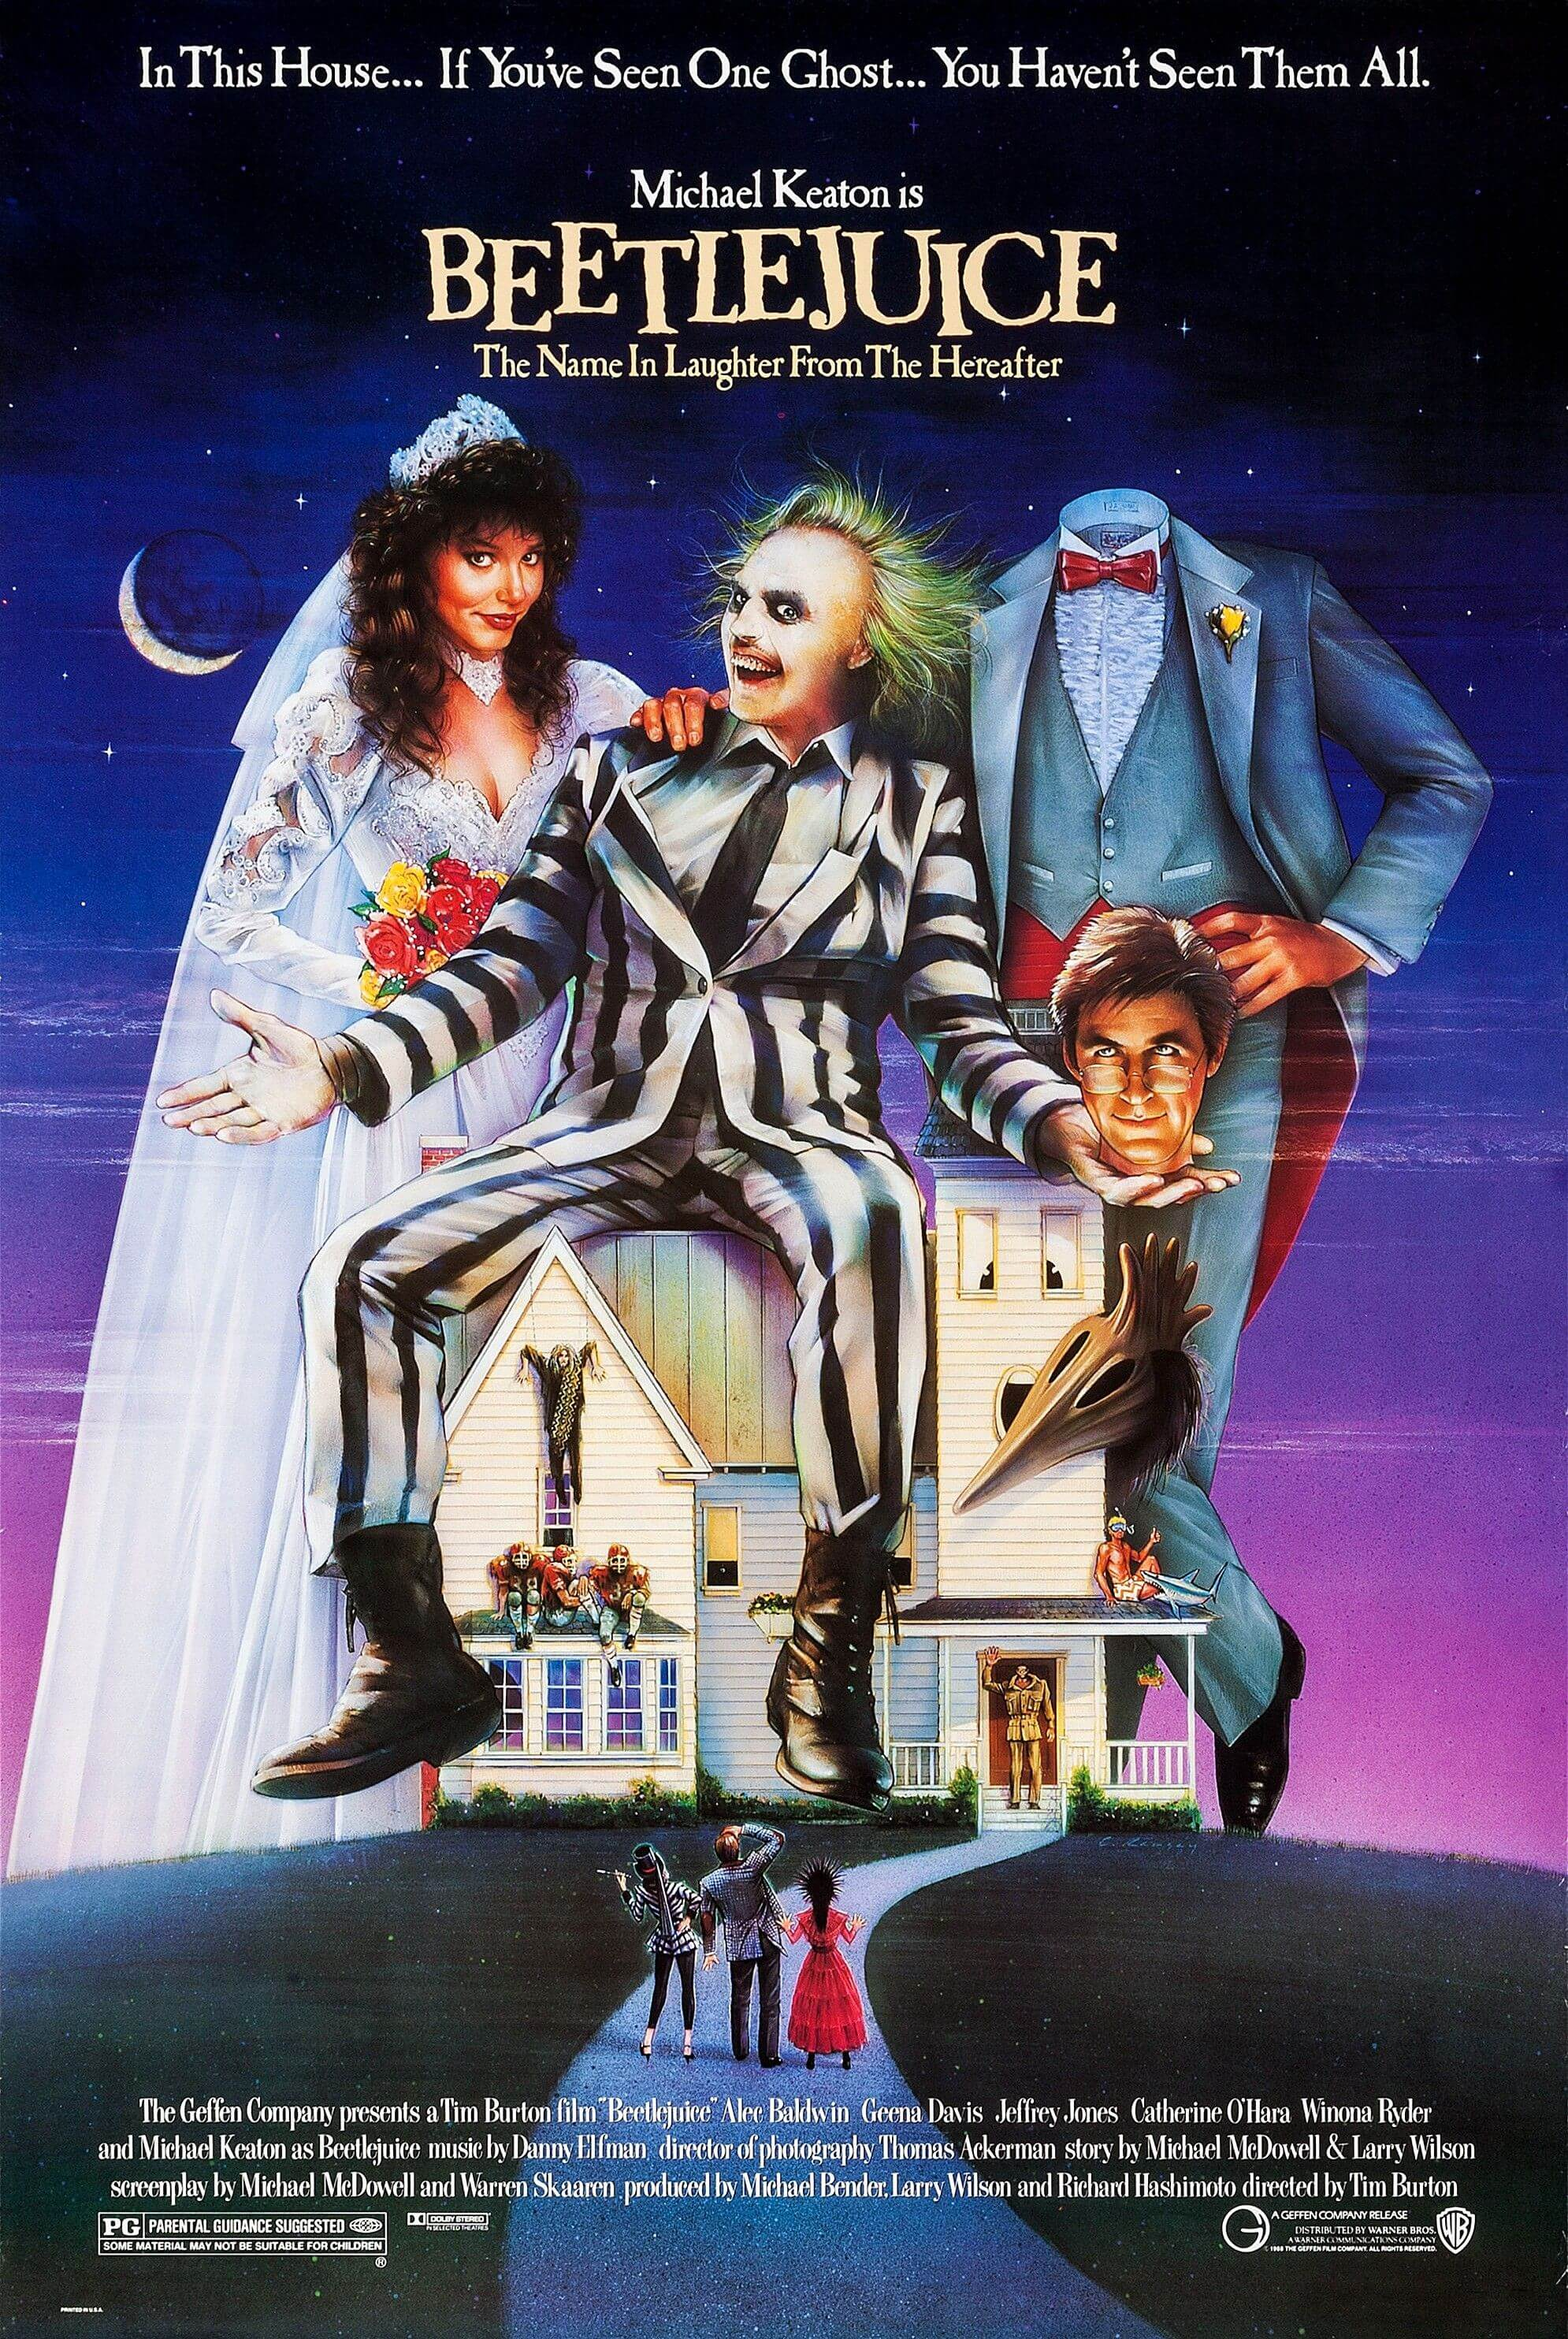 BEETLEJUICE halloweenmovie